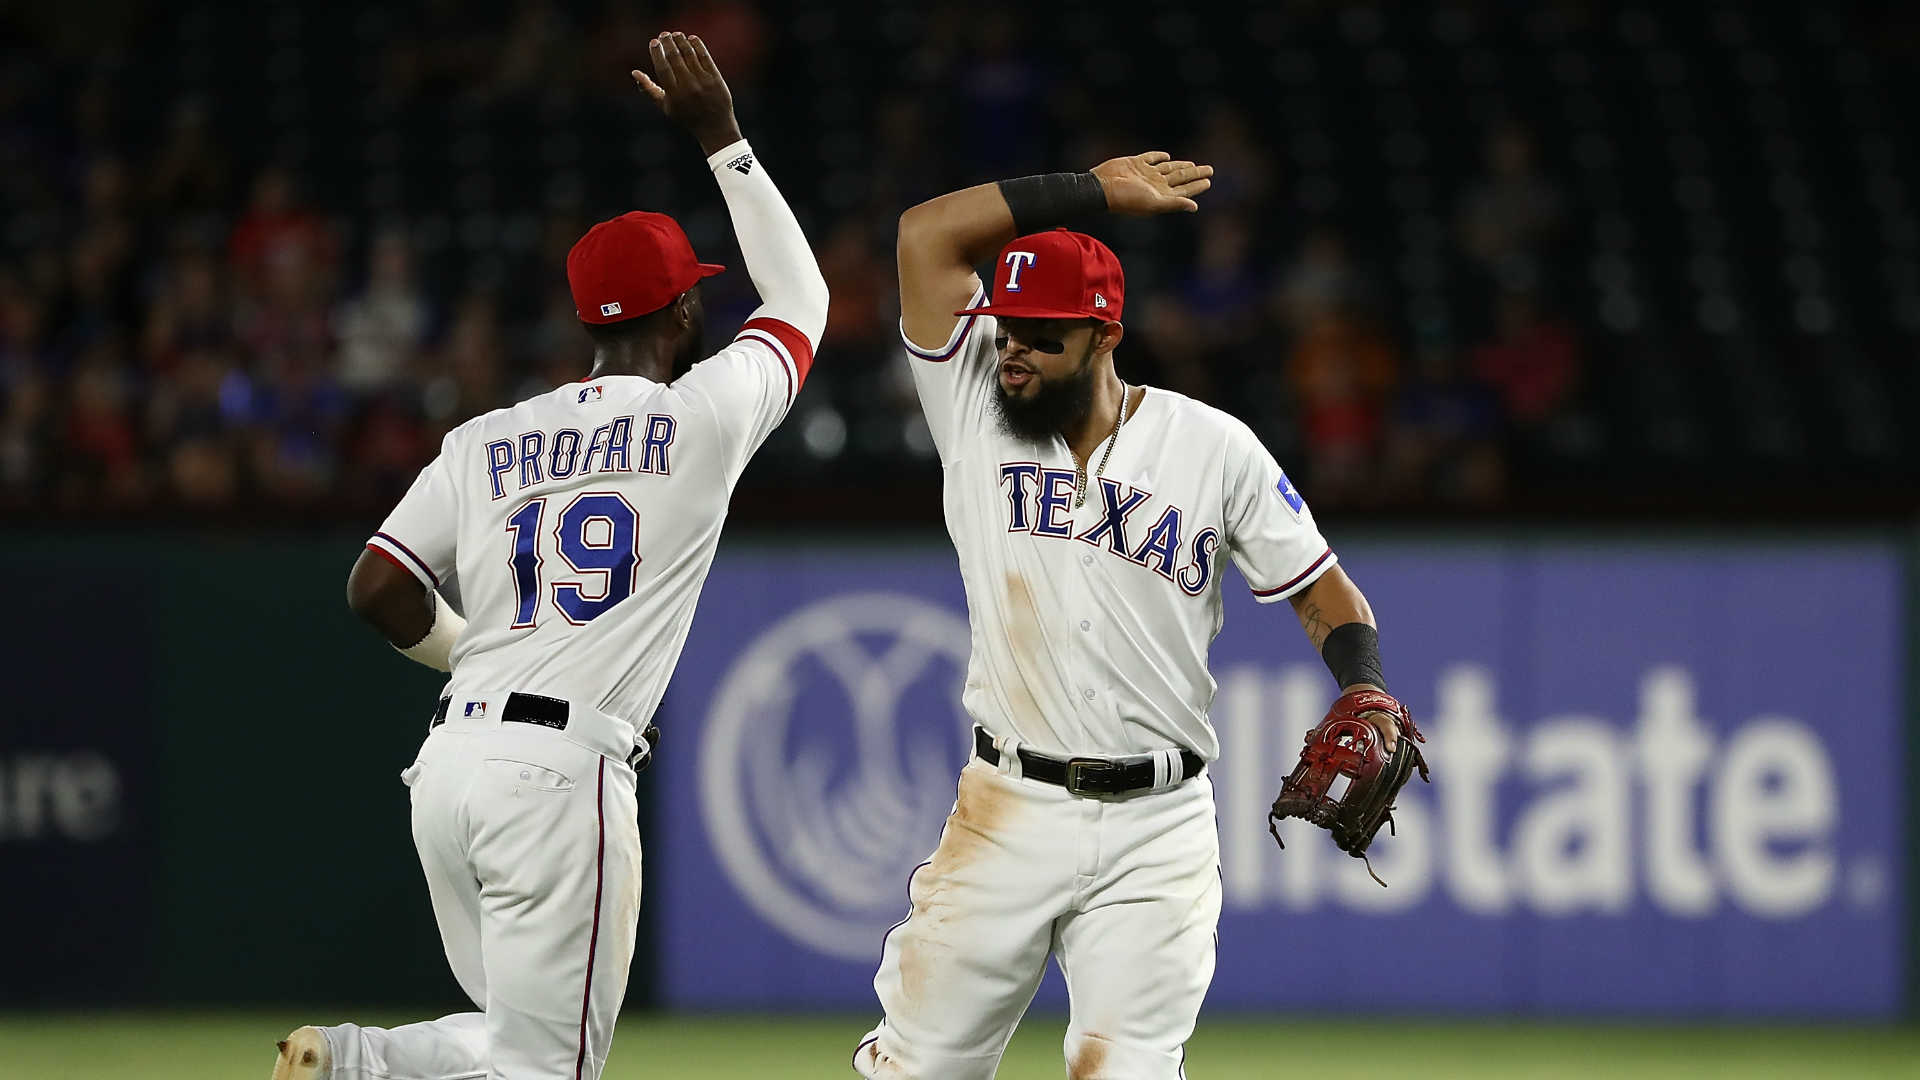 Texas Rangers Pull A Rare Triple Play Not Seen In 106 Years